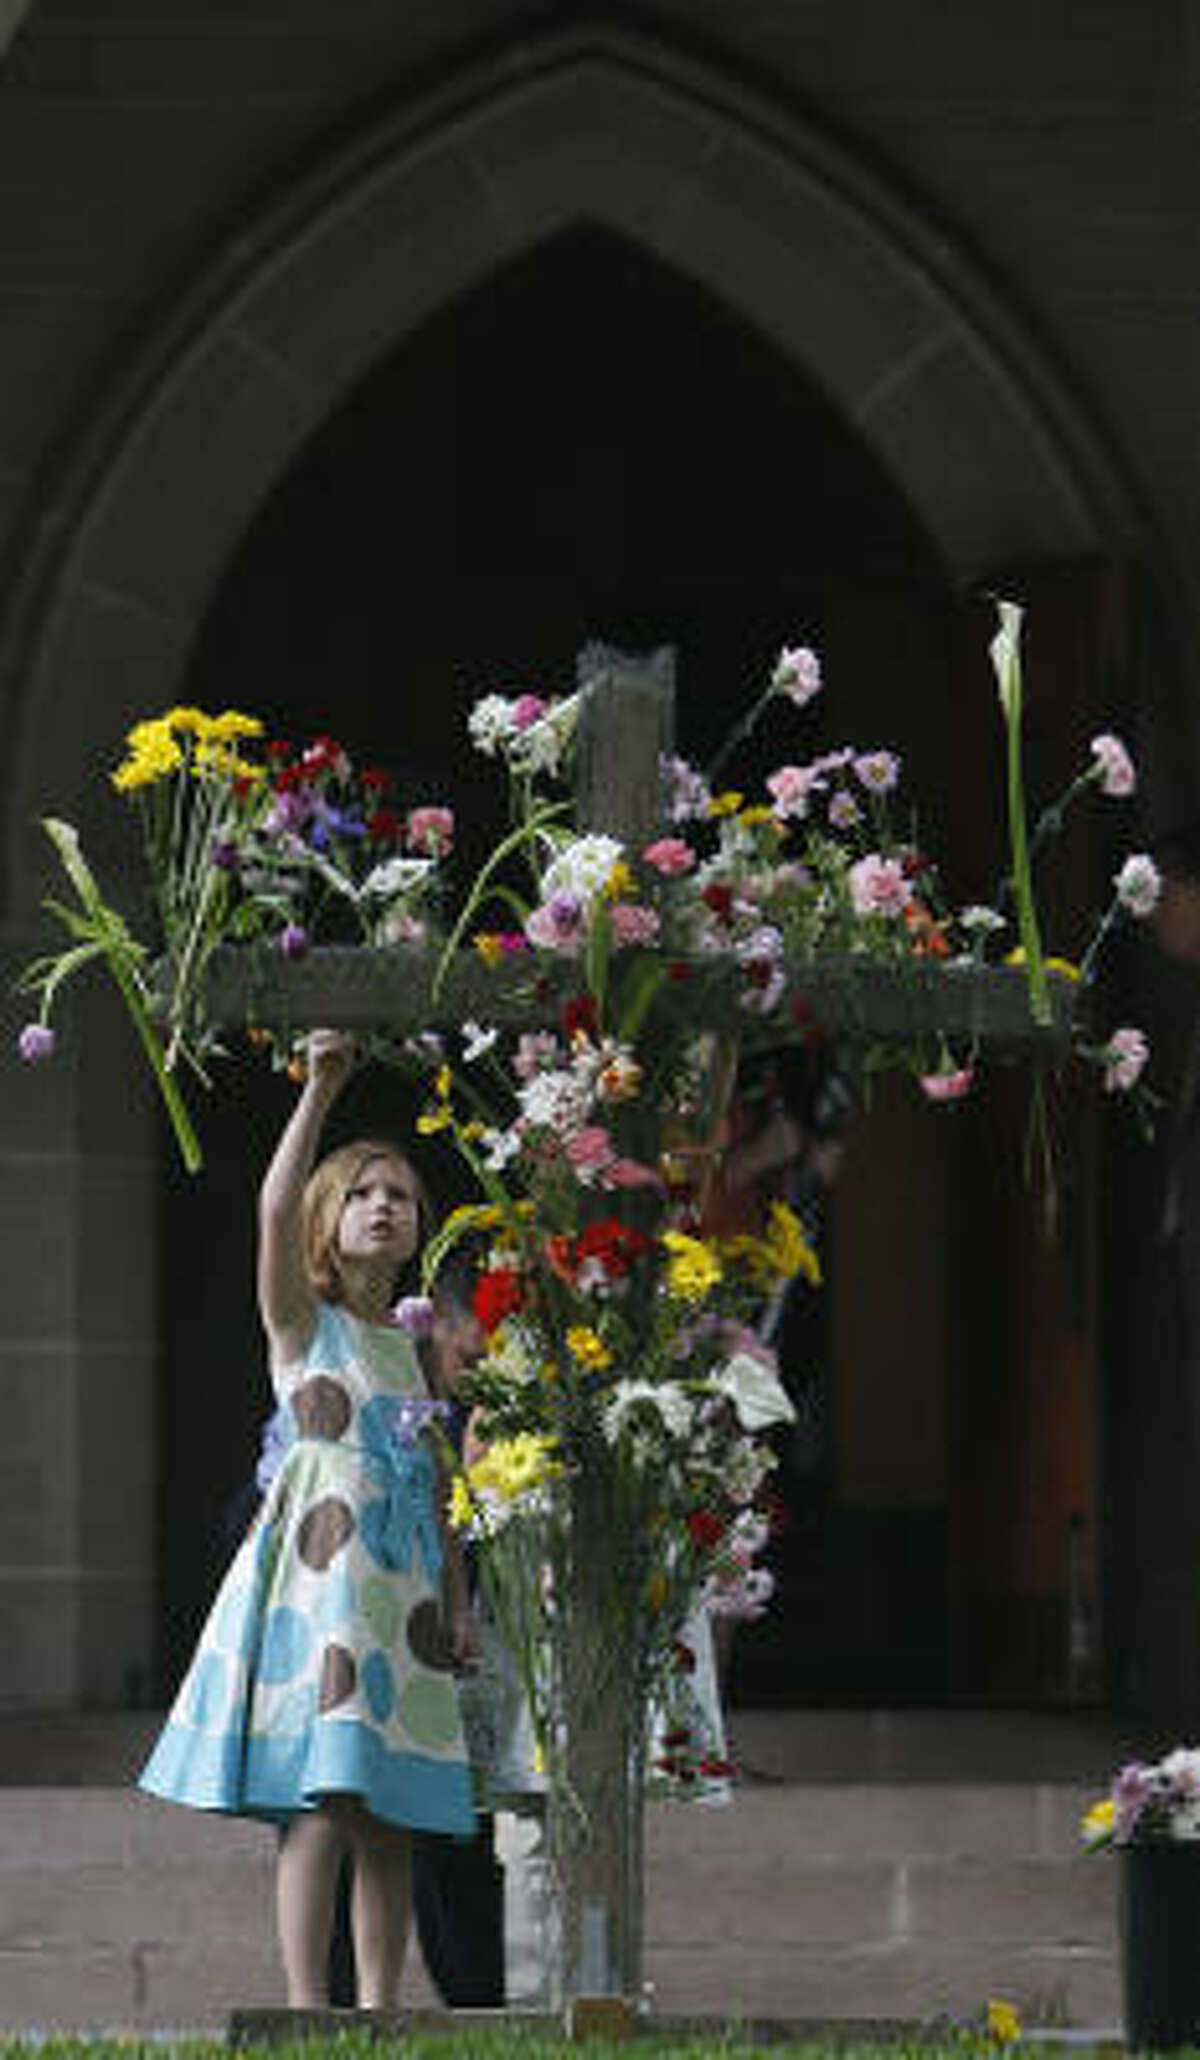 Emma Senpem places a flower on a wooden cross placed in the sanctuary lawn before attending Easter Service at St. Paul's United Methodist Church.